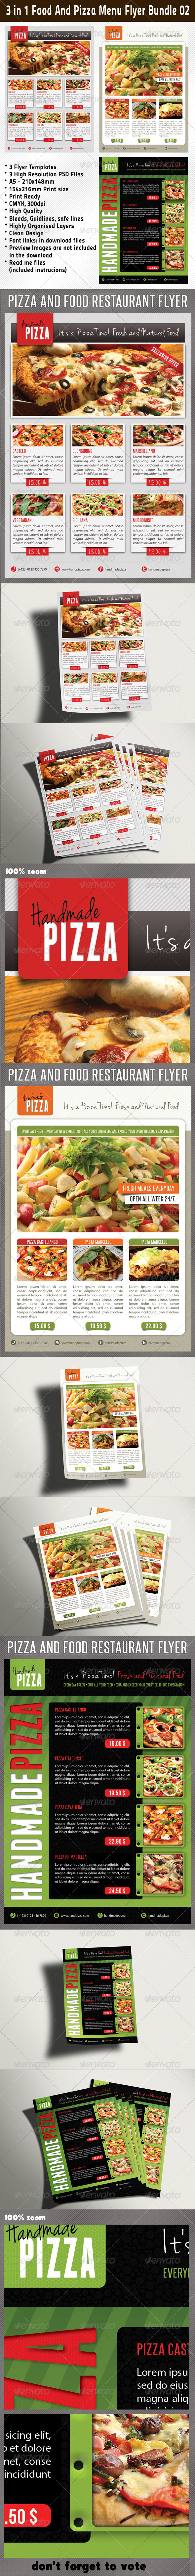 3 in 1 Food And Pizza Menu Flyer Bundle 02 - Restaurant Flyers